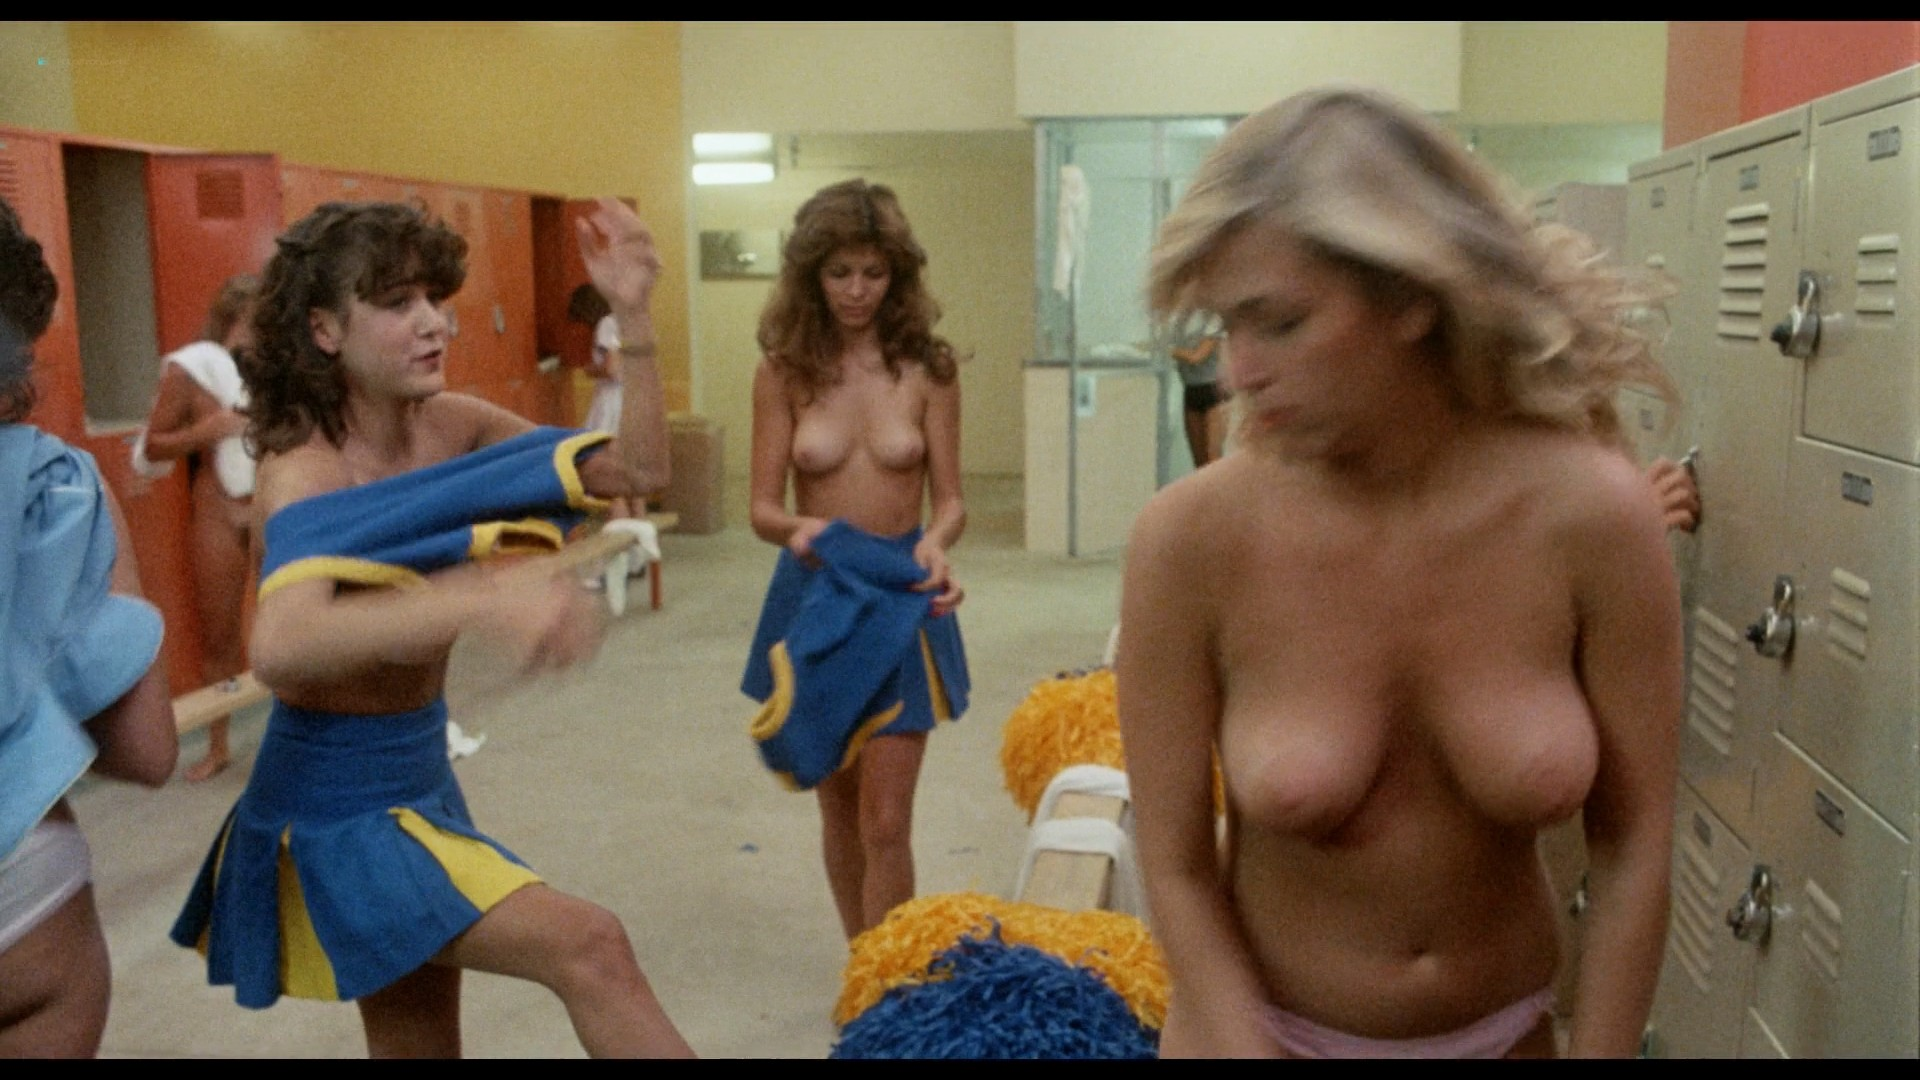 Graem McGavin nude Donna McDaniel and other's nude full frontal - Angel (1983) HD1080p BluRay (9)